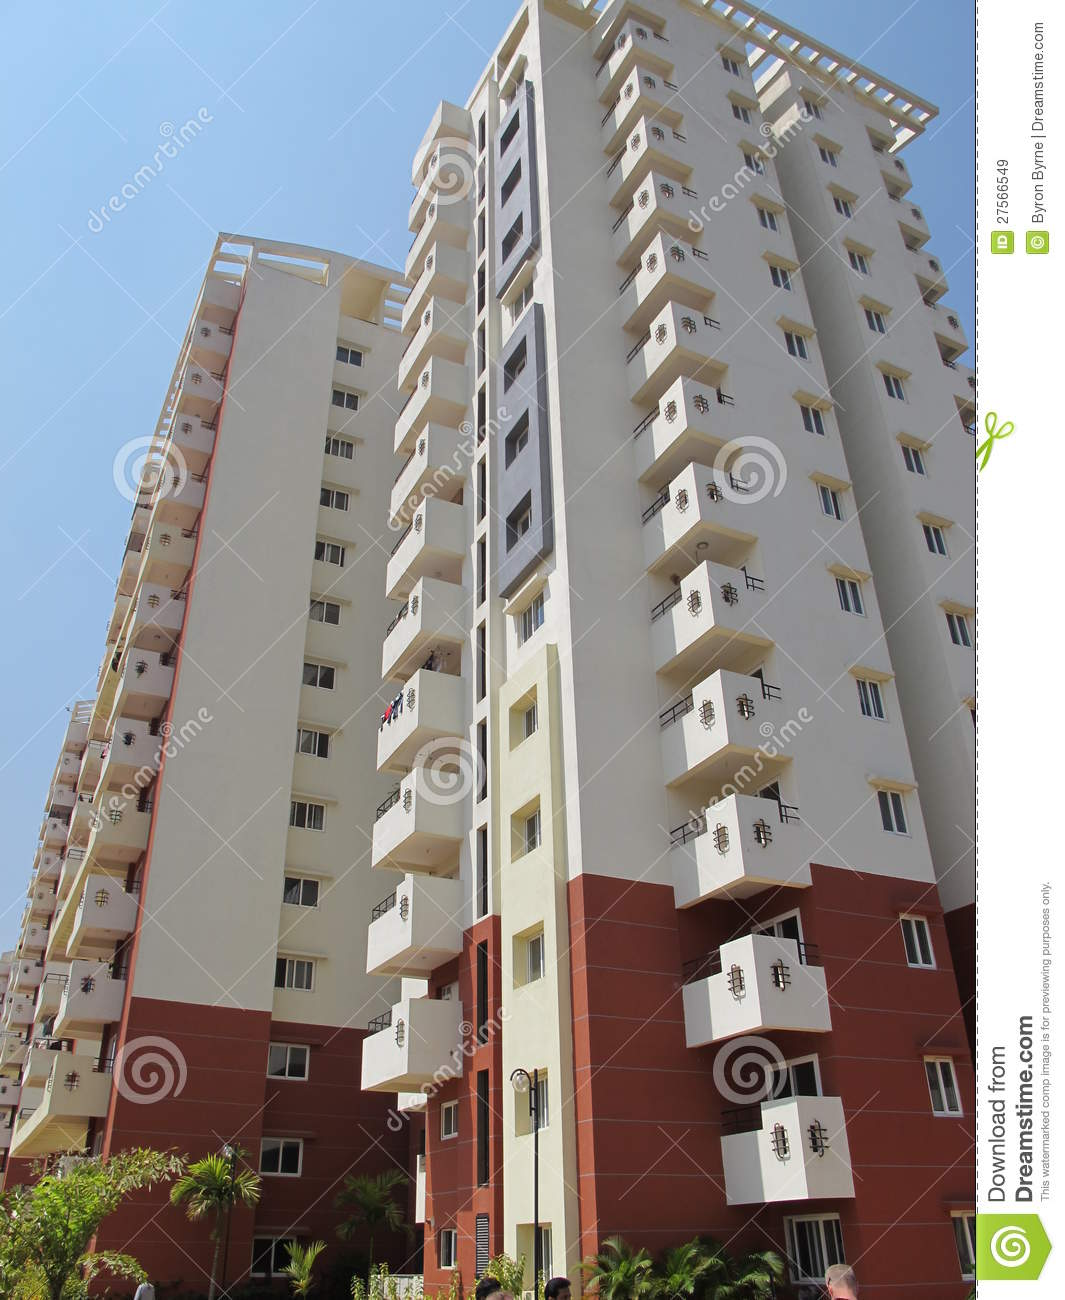 Residential apartment building in india royalty free stock for Apartment construction plans india